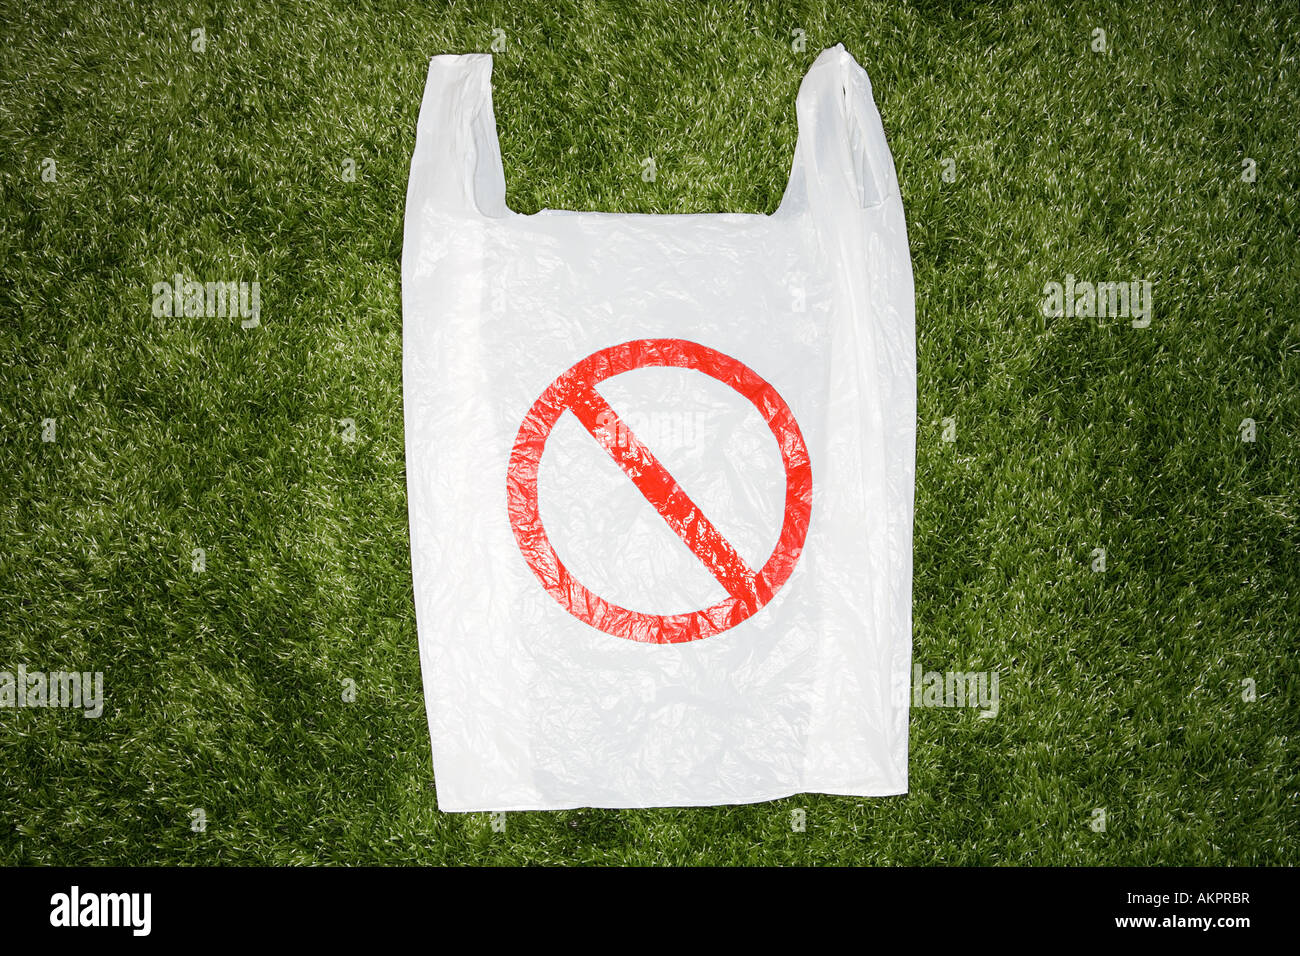 A plastic bag with a warning sign on it - Stock Image